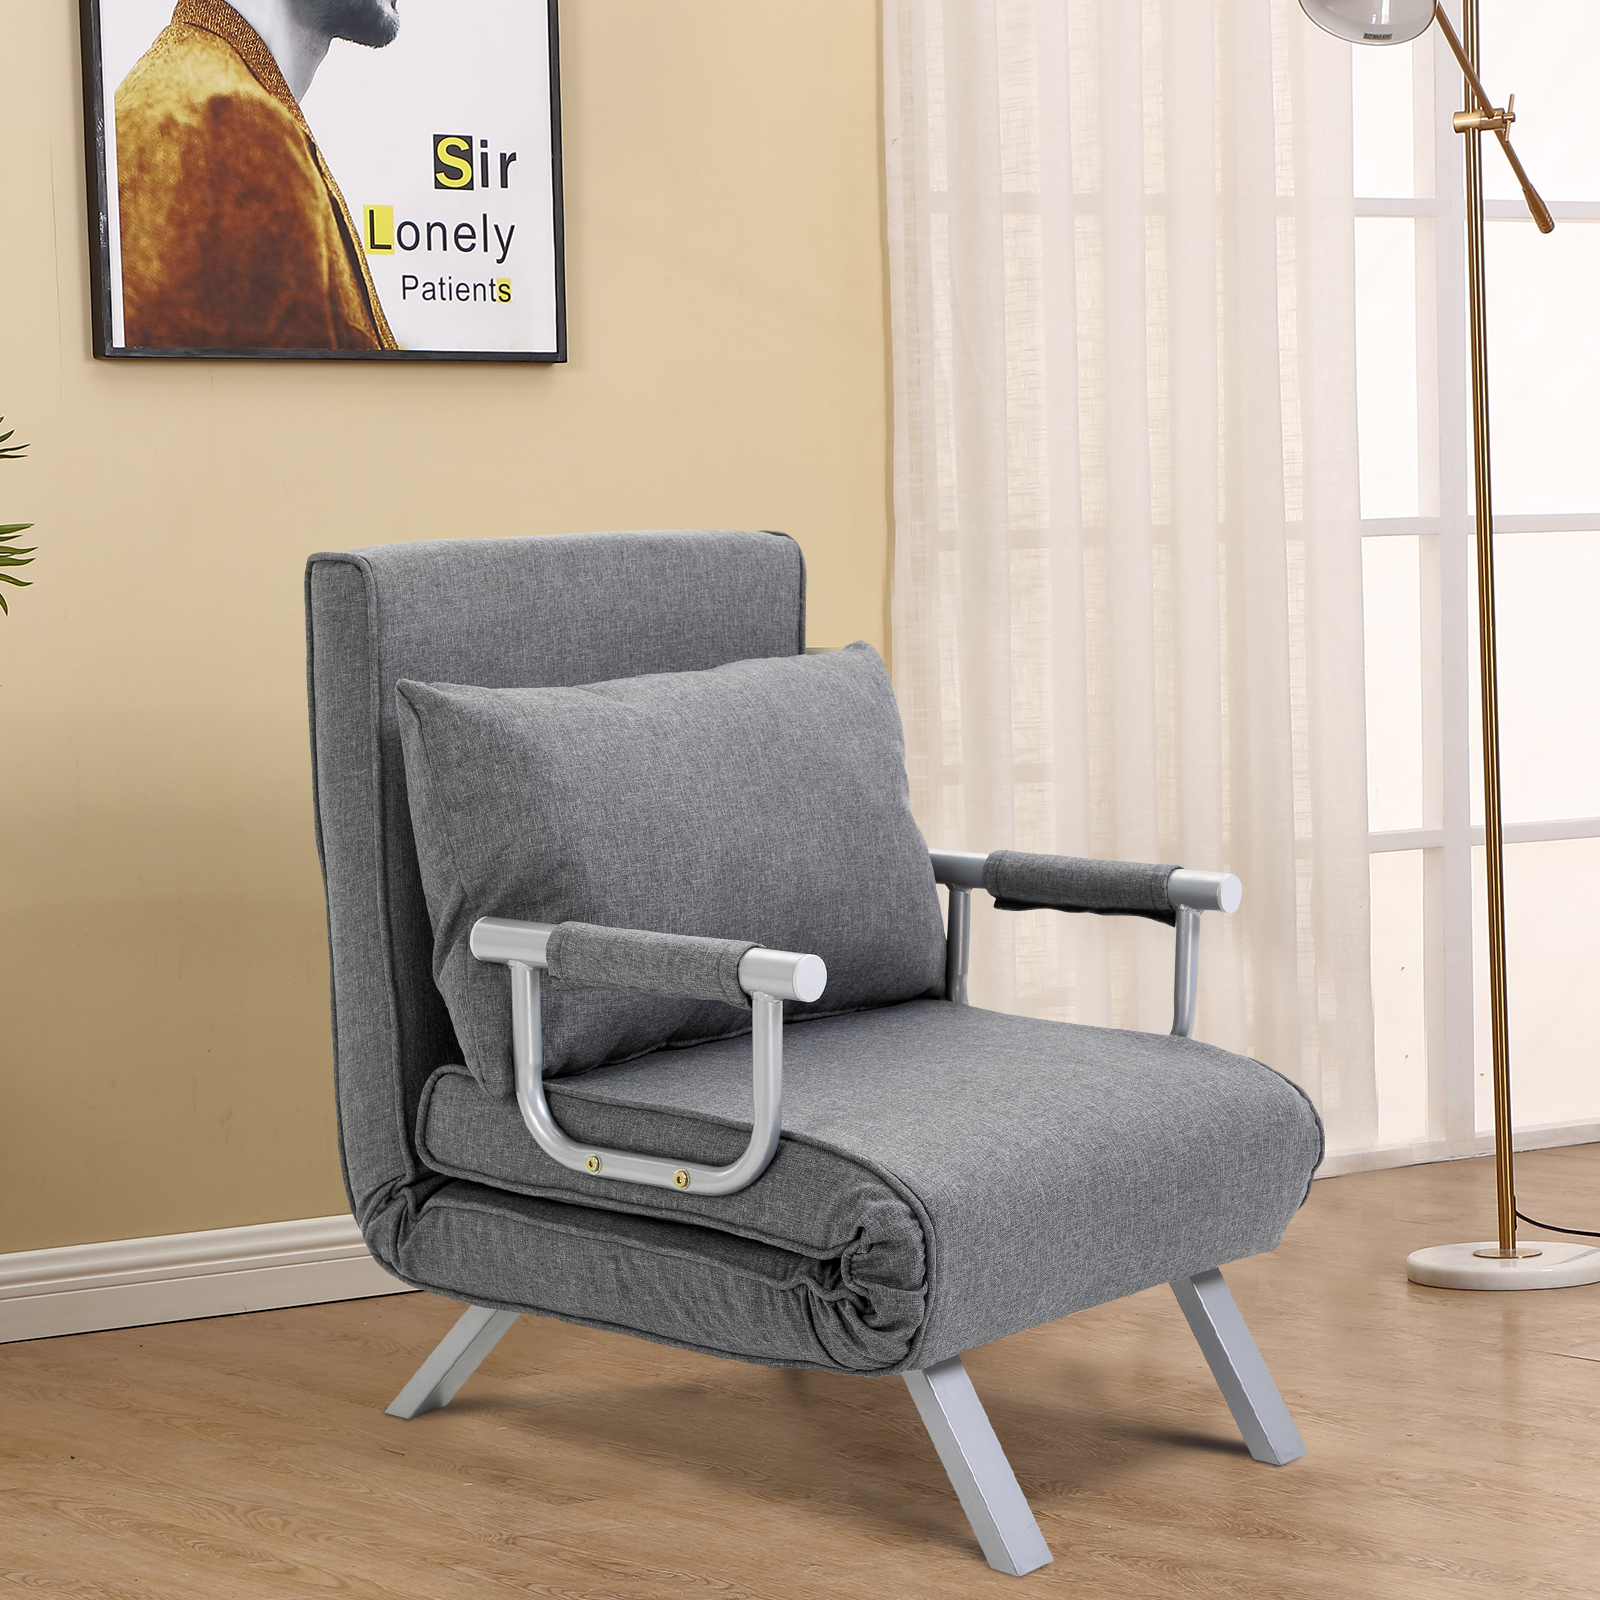 Details about HOMCOM Convertible Sleeper Chair Folding Sofa Bed